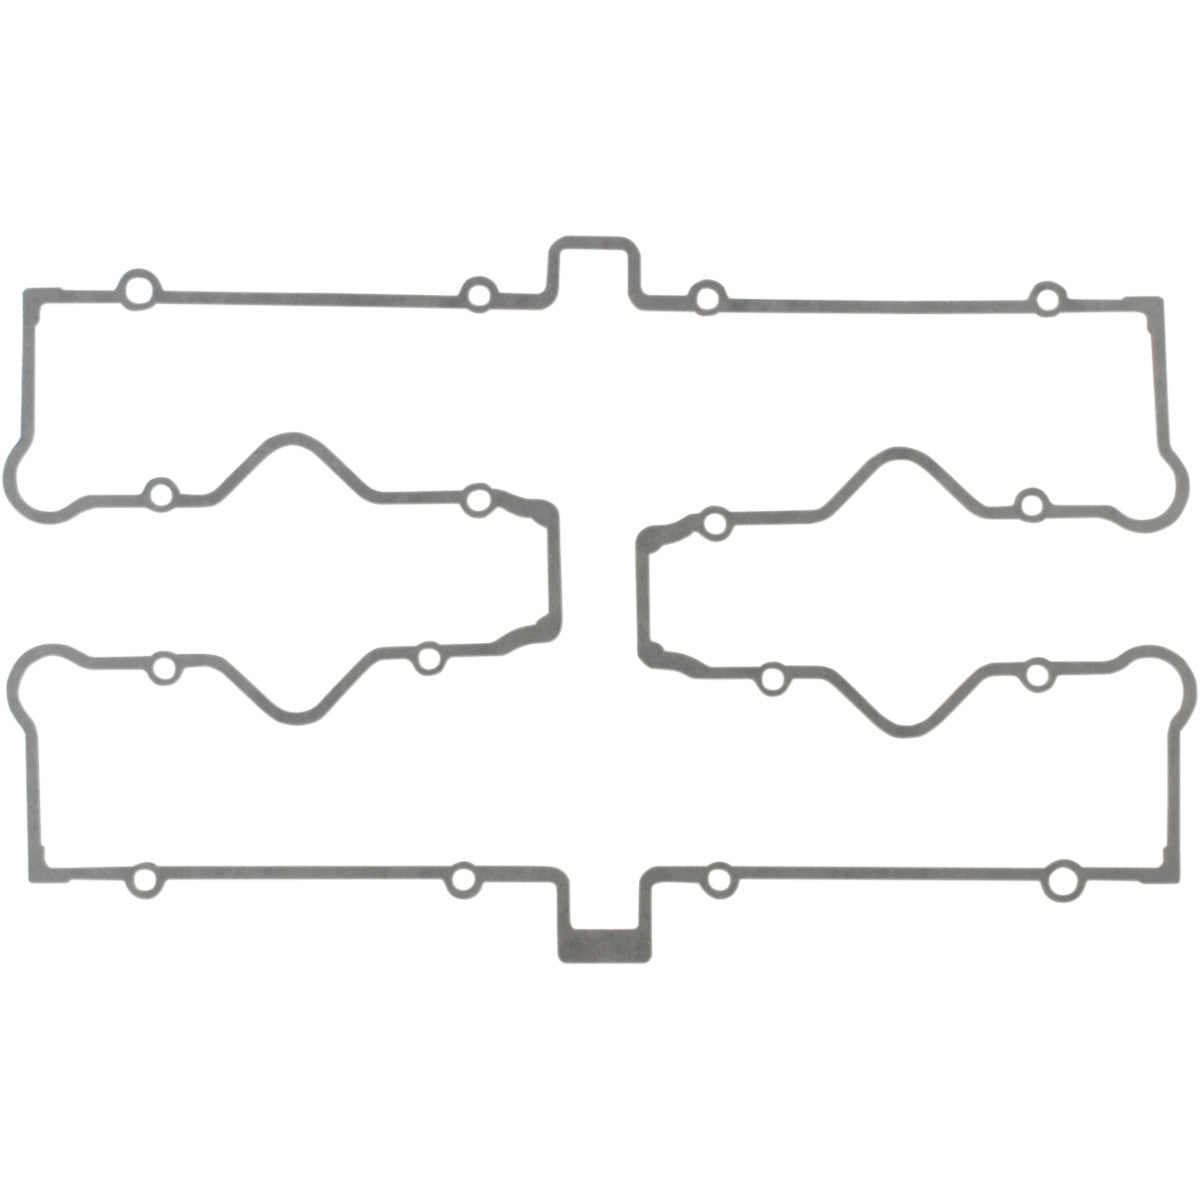 C8212 COMETIC Valve Cover Gasket COMETIC STREET GASKET